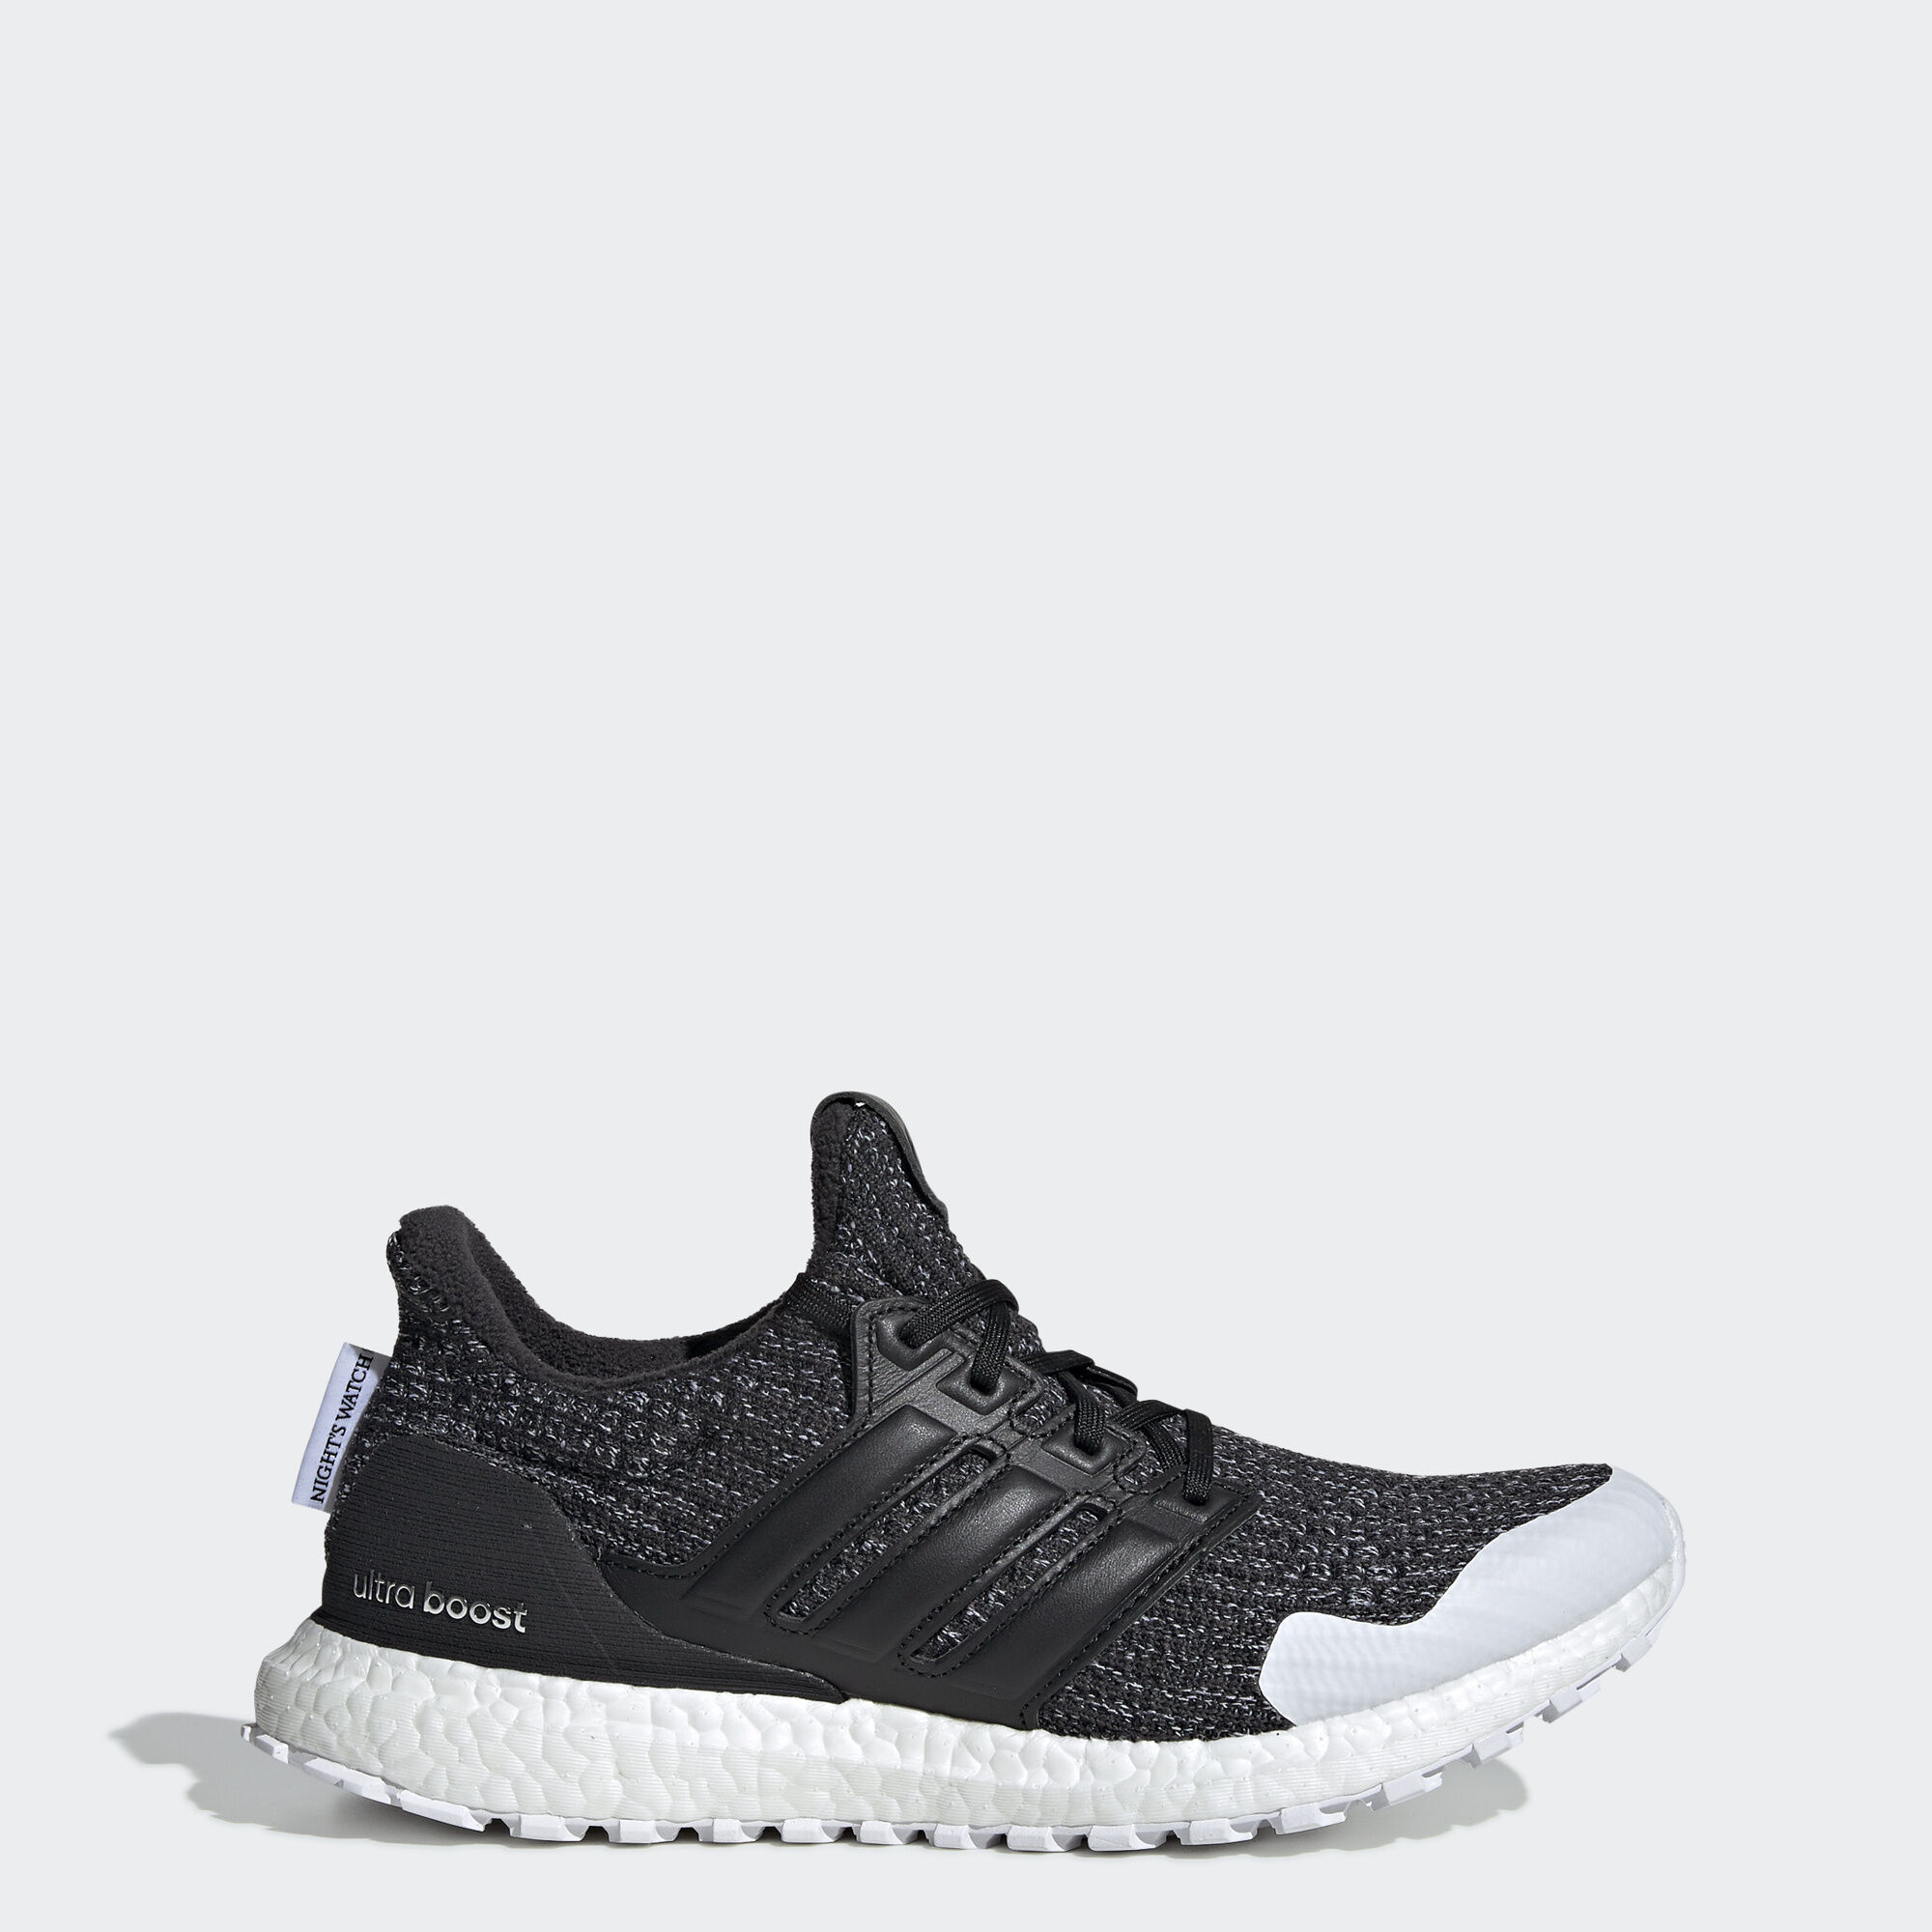 8c857c74e55b Ultraboost x Game Of Thrones Shoes